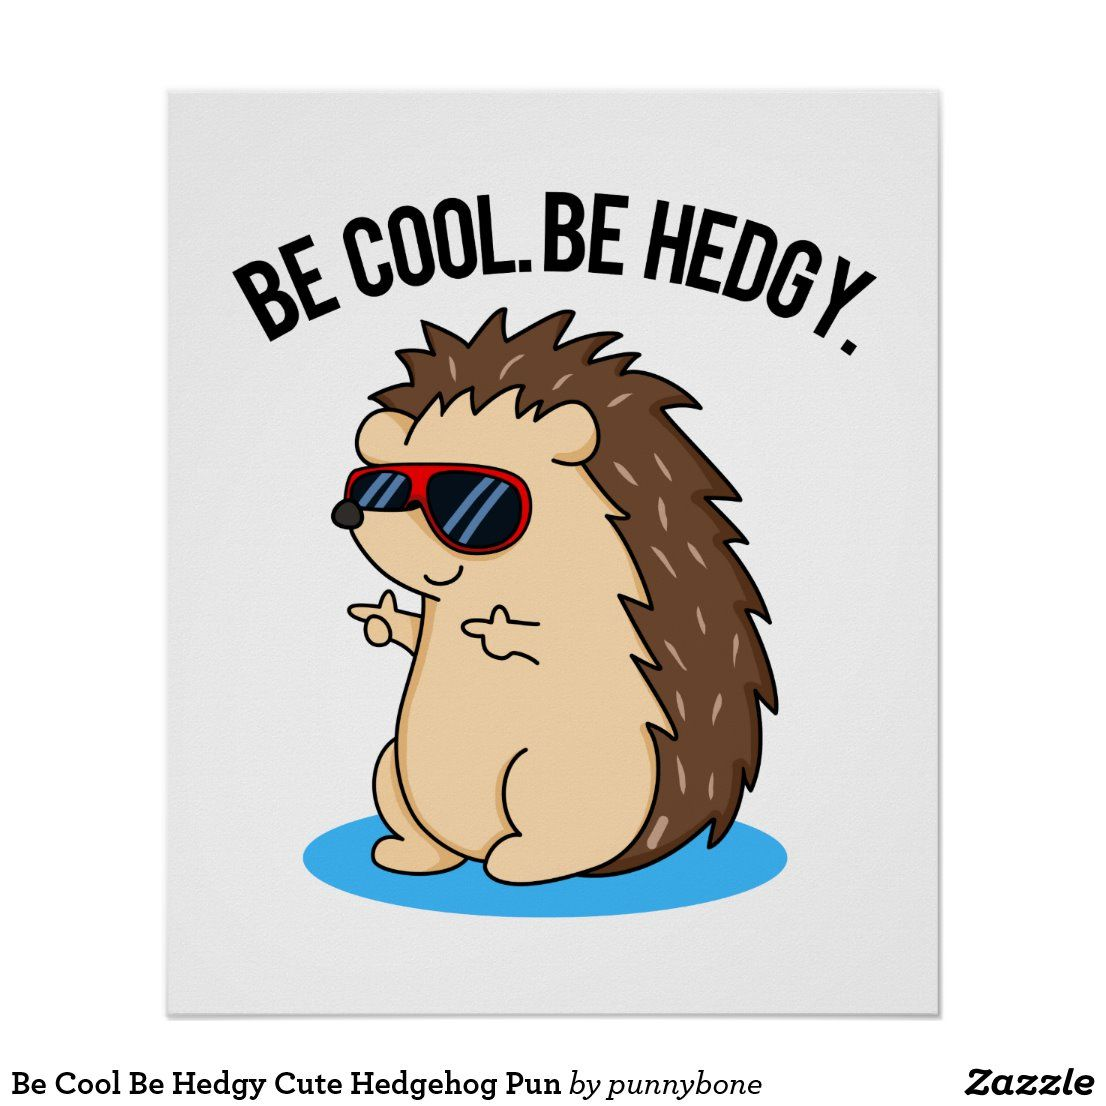 Be Cool Be Hedgy Cute Hedgehog Pun Poster | Zazzle.com